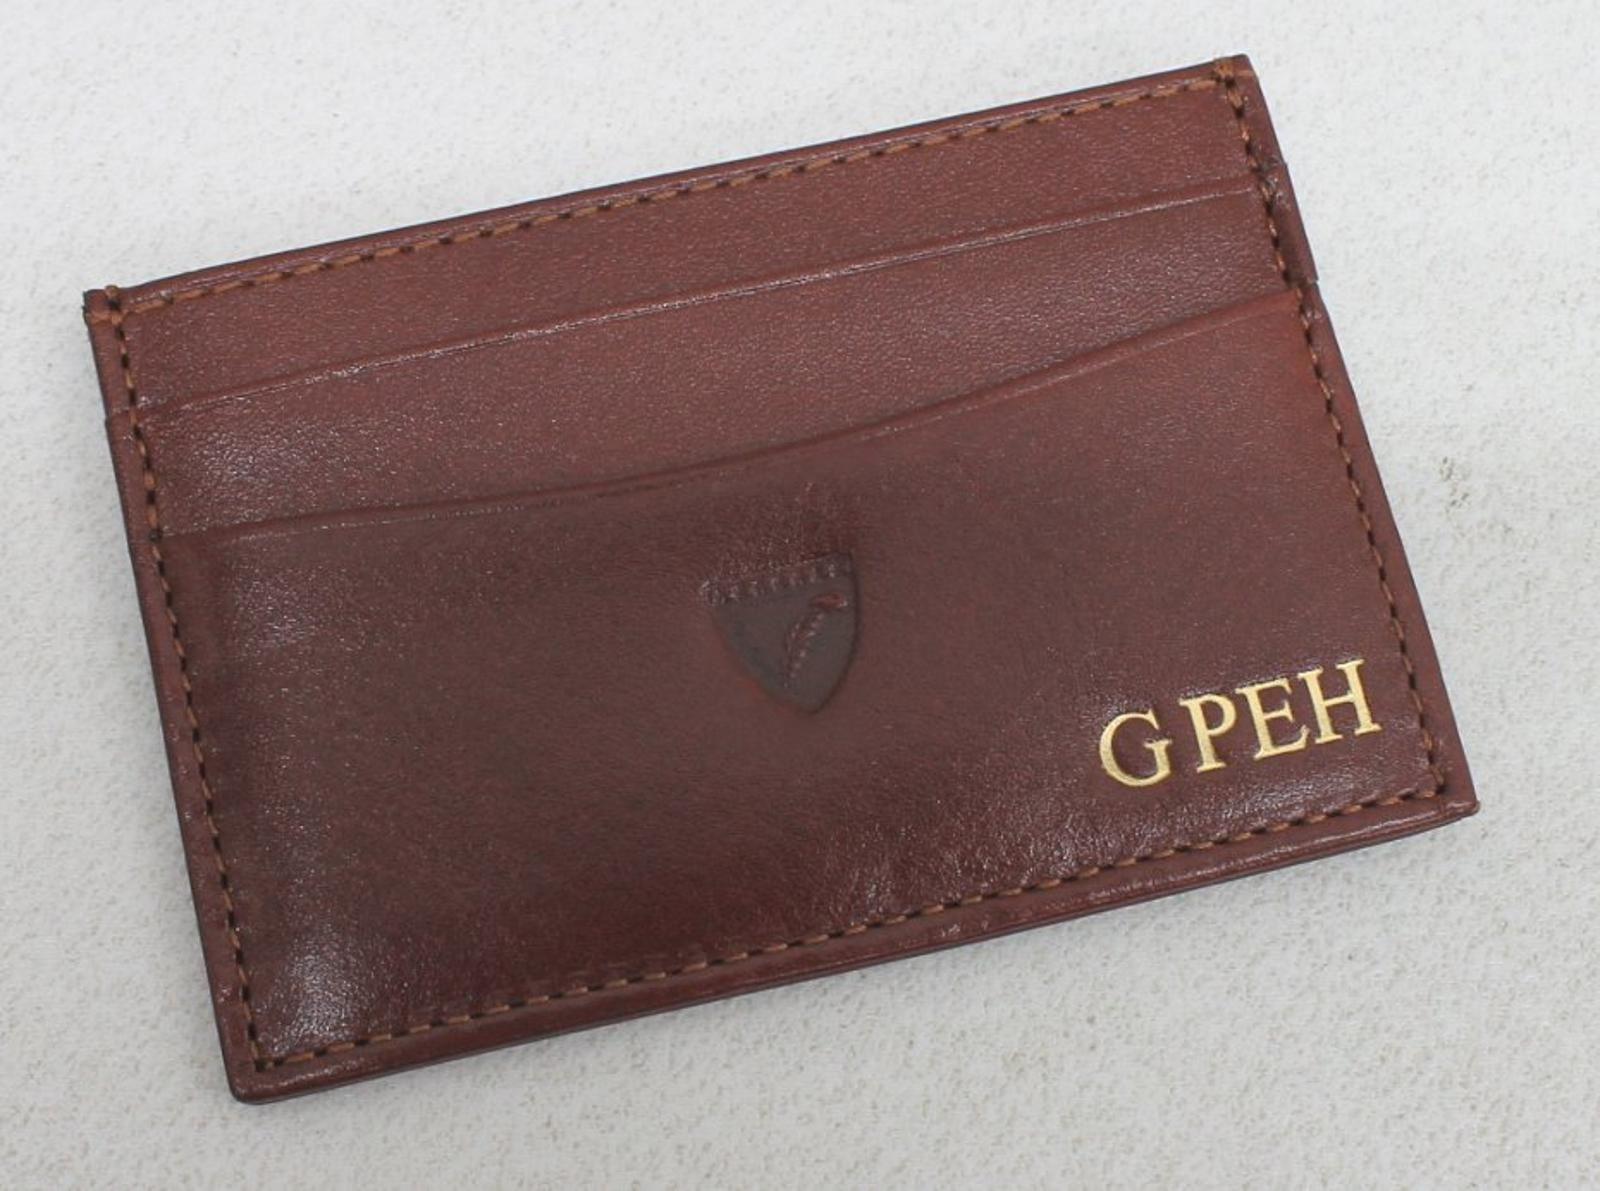 ASPINAL-OF-LONDON-Men-039-s-Brown-Leather-Slim-6-Credit-Card-Case-Embossed-NEW